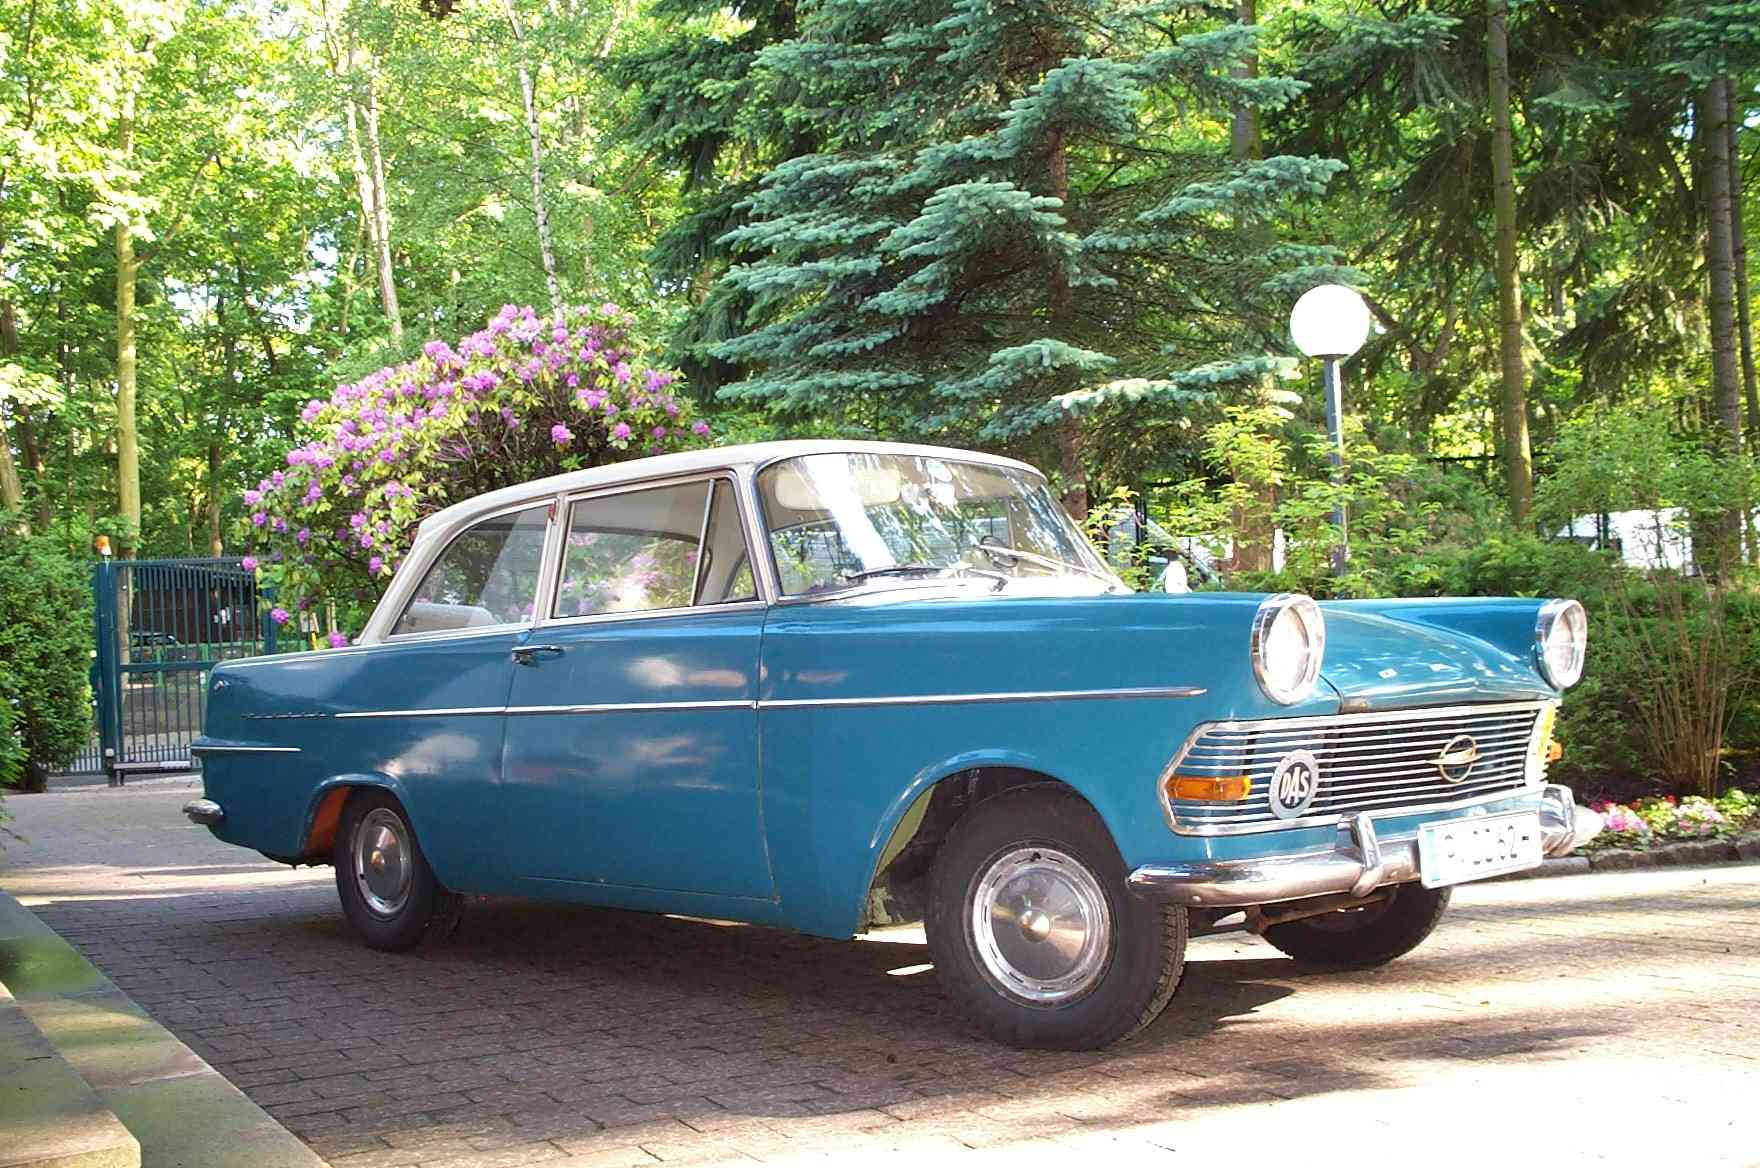 Opel Rekord P2 sedan right front